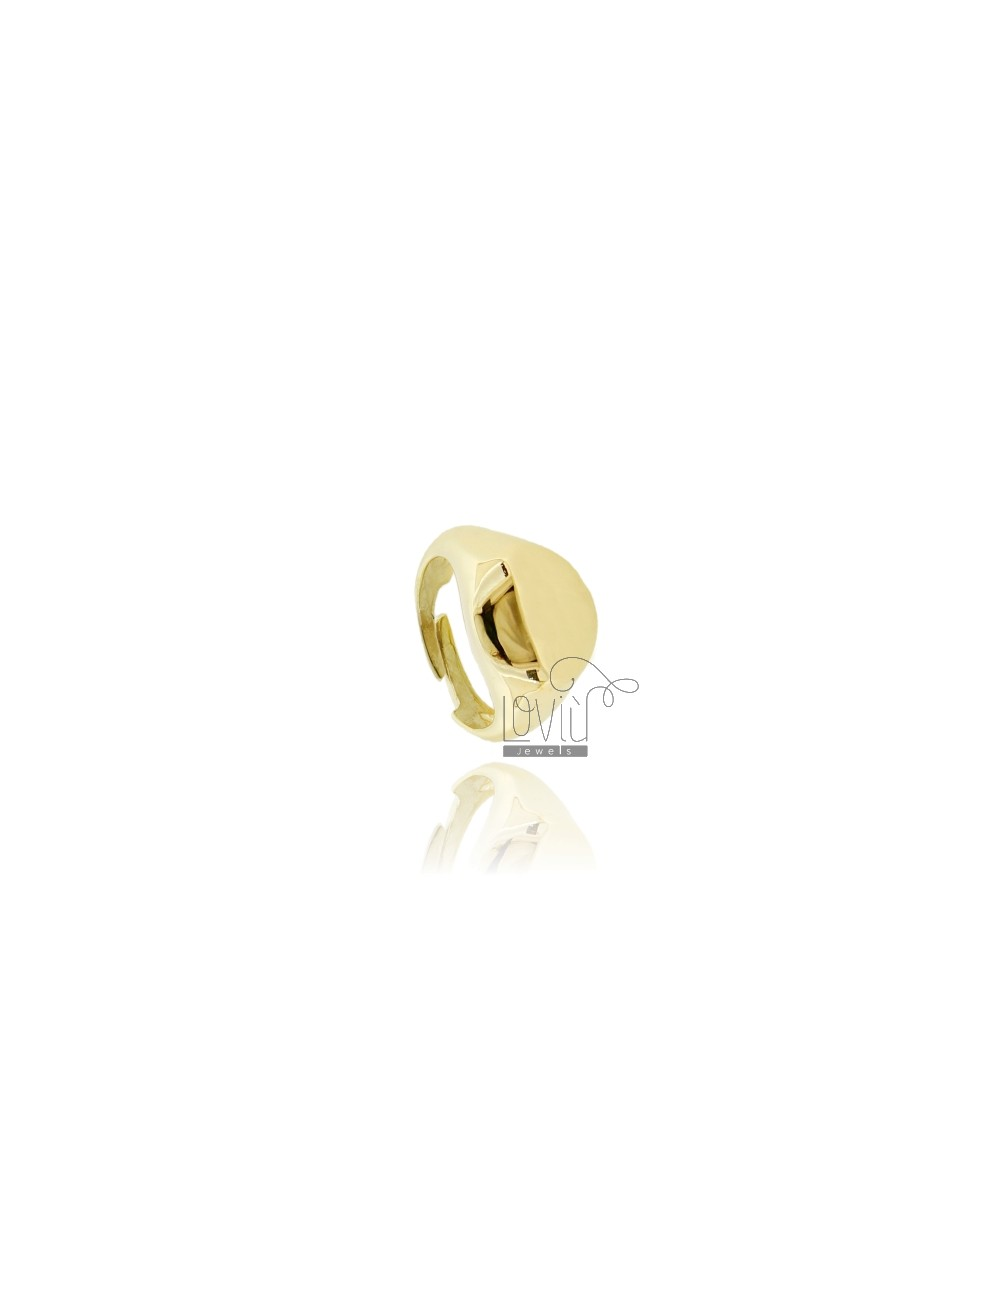 LITTLE FINGER RING ROUND GOLD PLATED SILVER 925 ‰